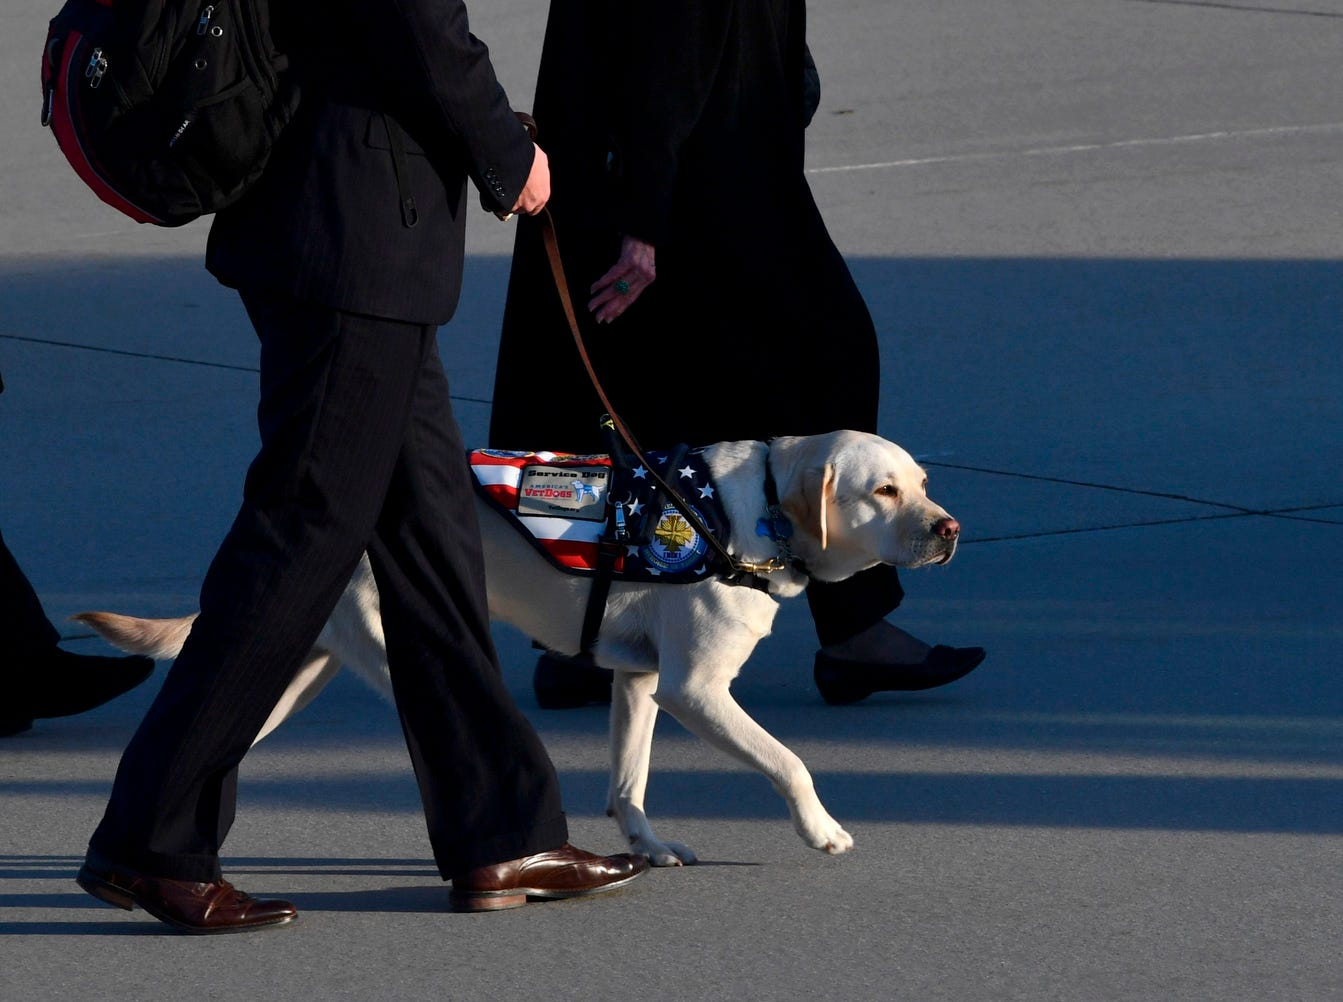 The yellow Labrador retriever Sully, the late former president's faithful service dog, walks on the tarmac after the flag-draped casket of former President George H.W. Bush was carried to a hearse.